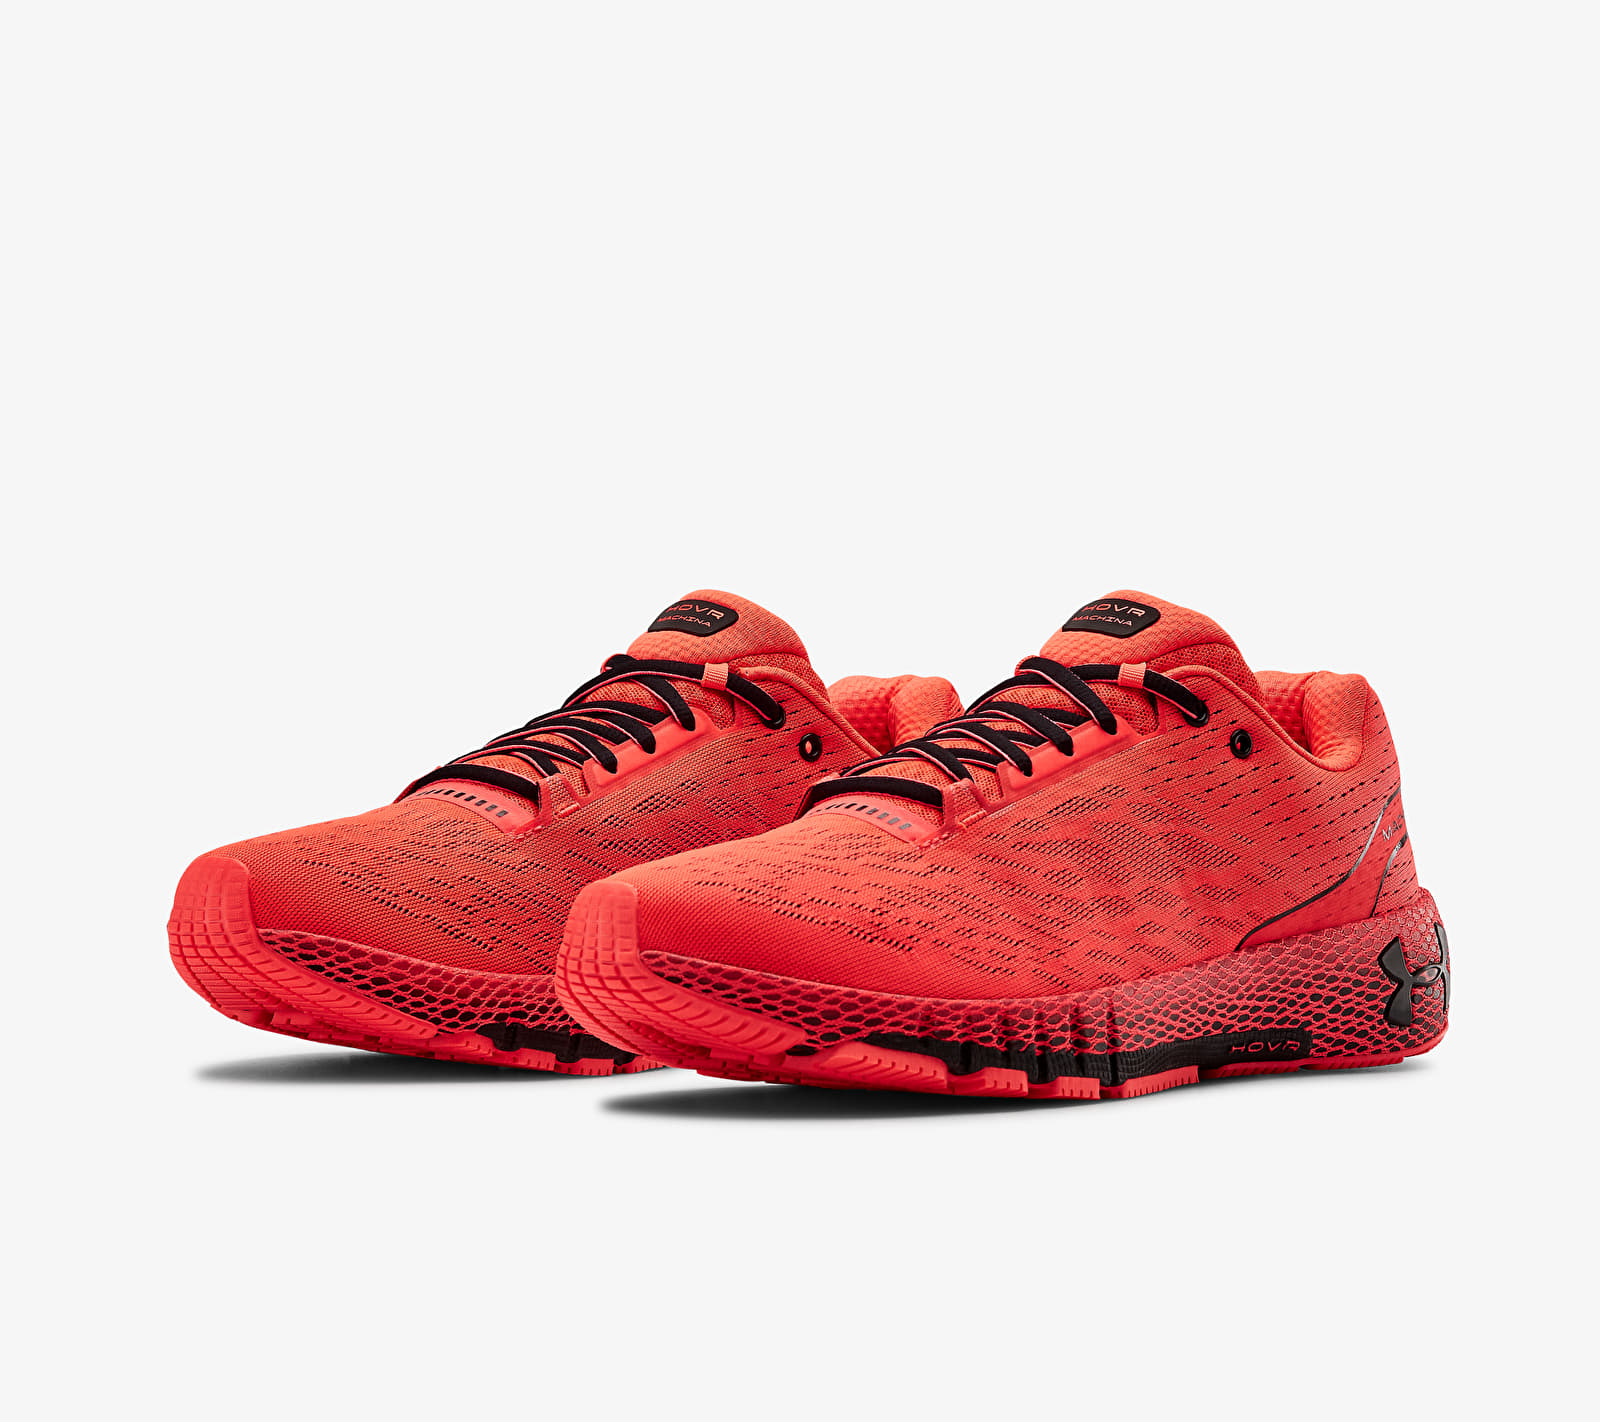 Under Armour HOVR Machina Red